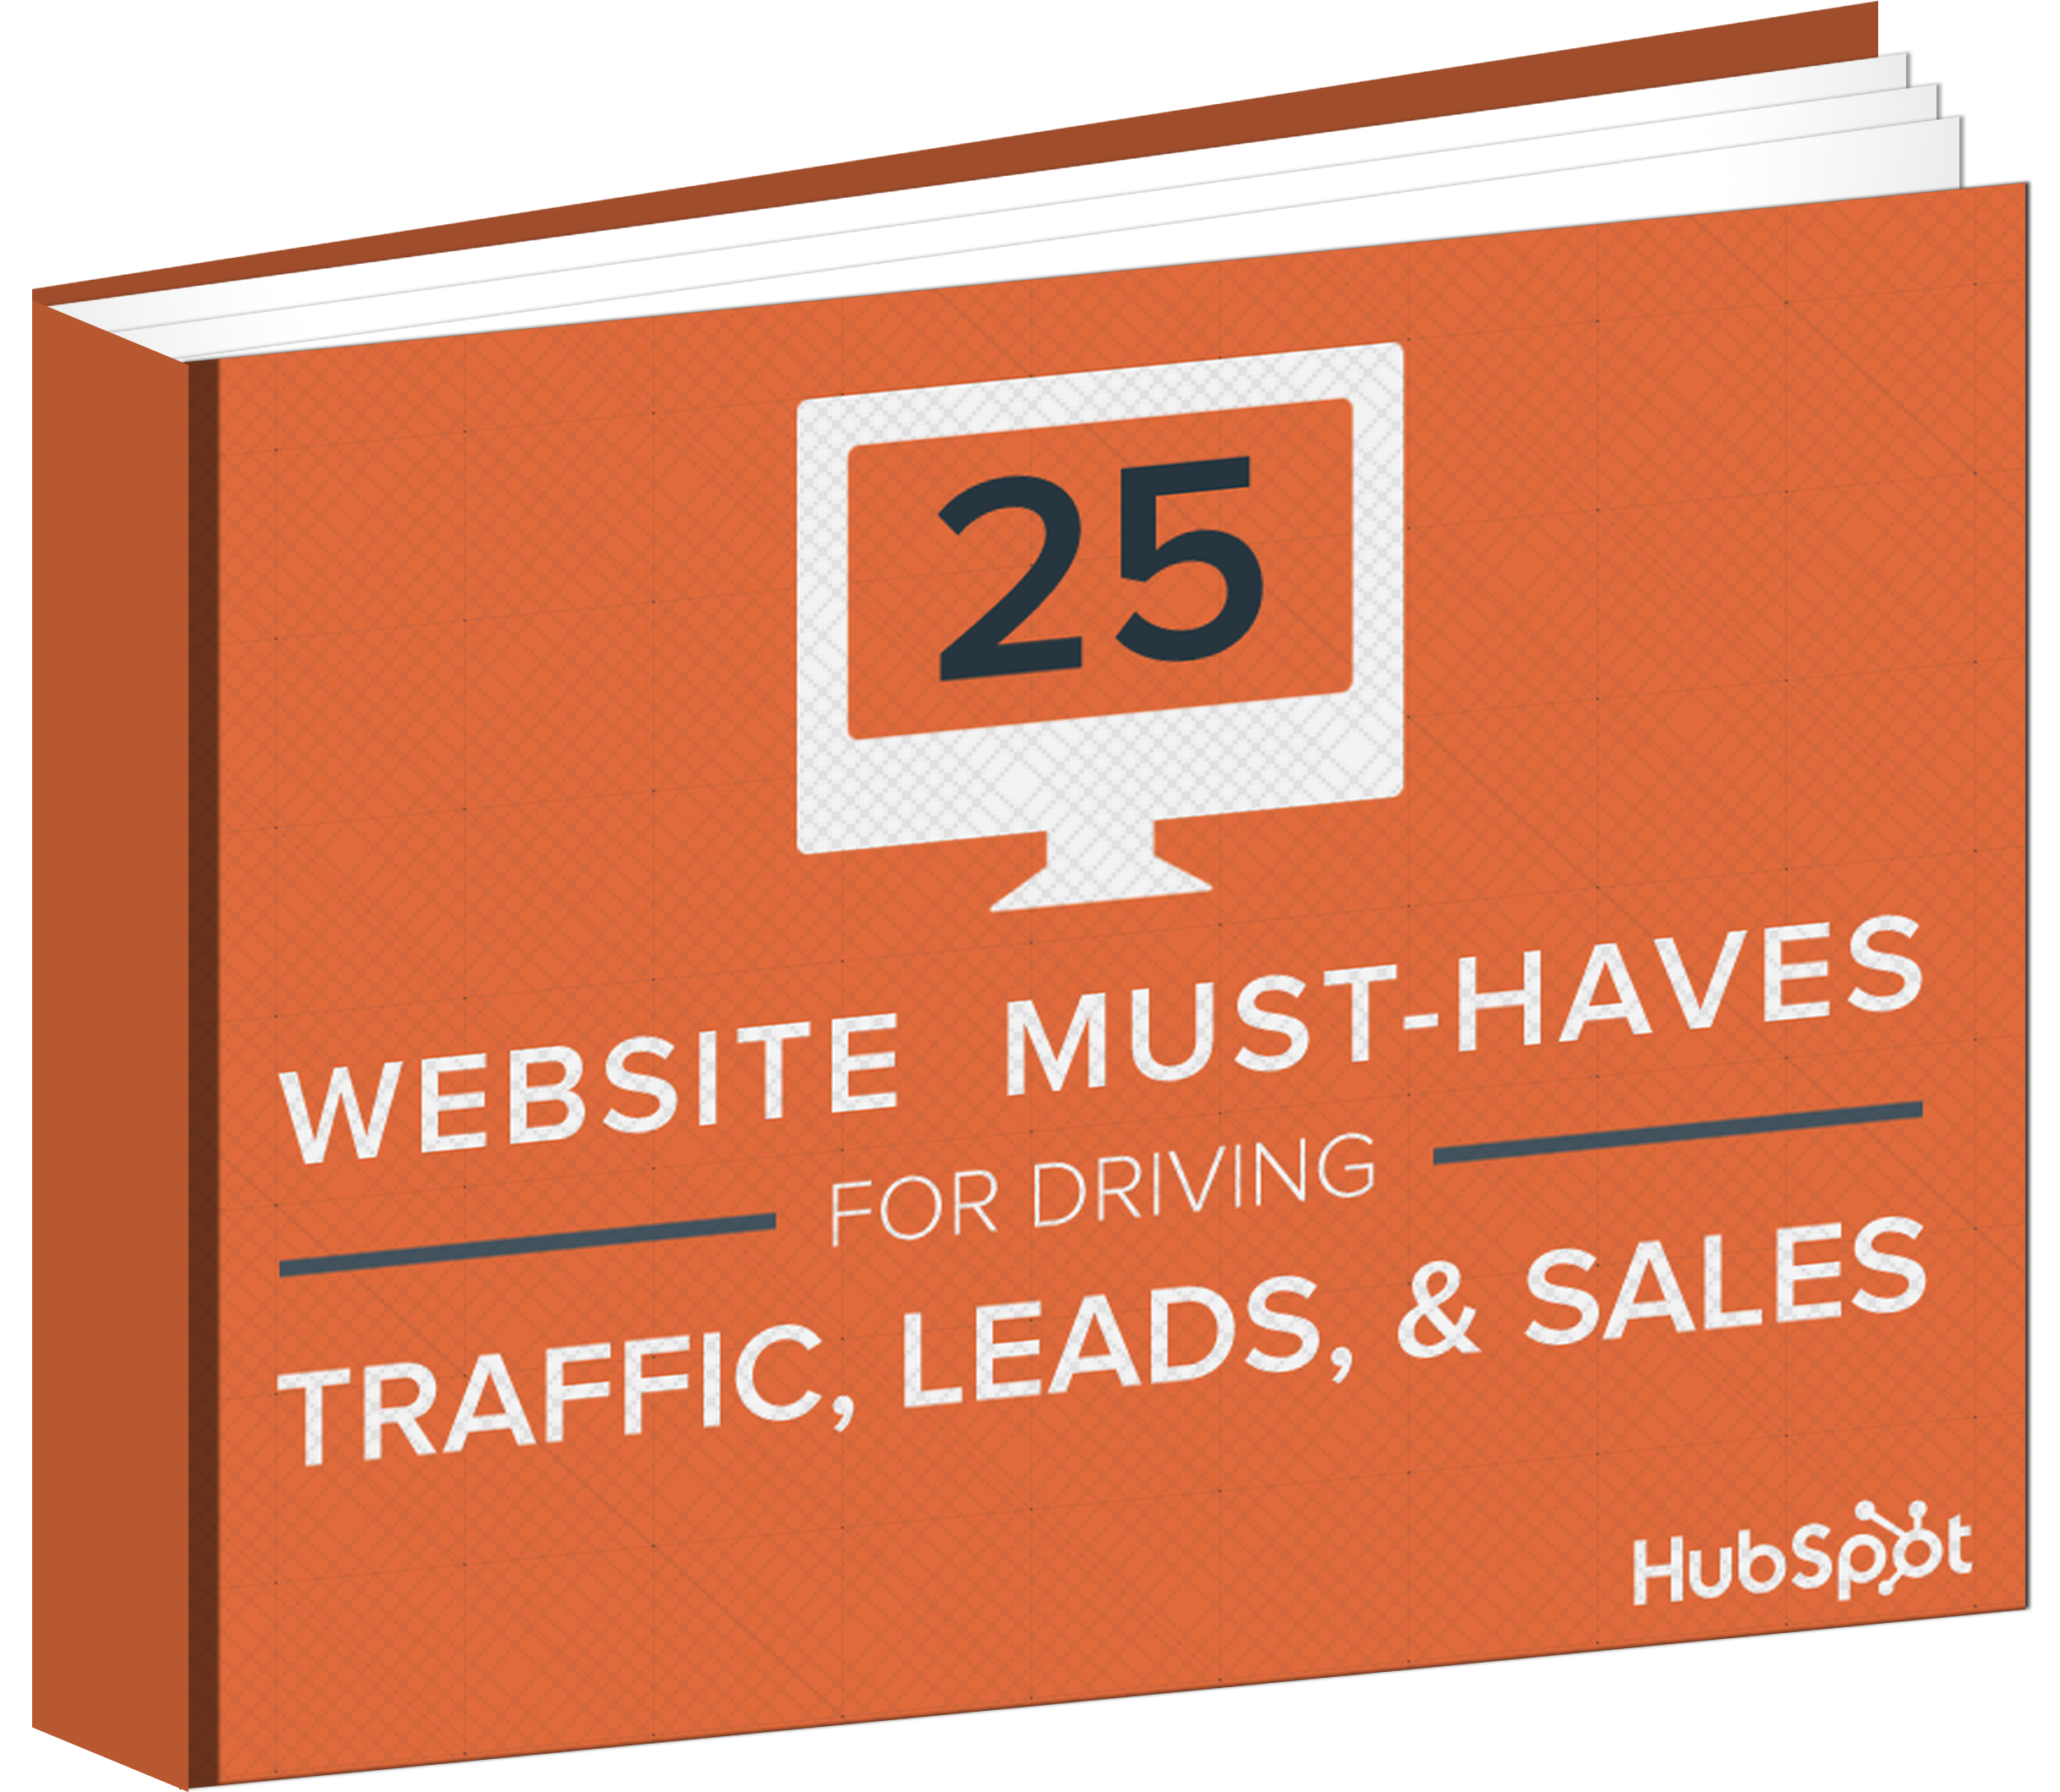 25-website-must-haves-for-driving-traffic-leads-sales-promo.png